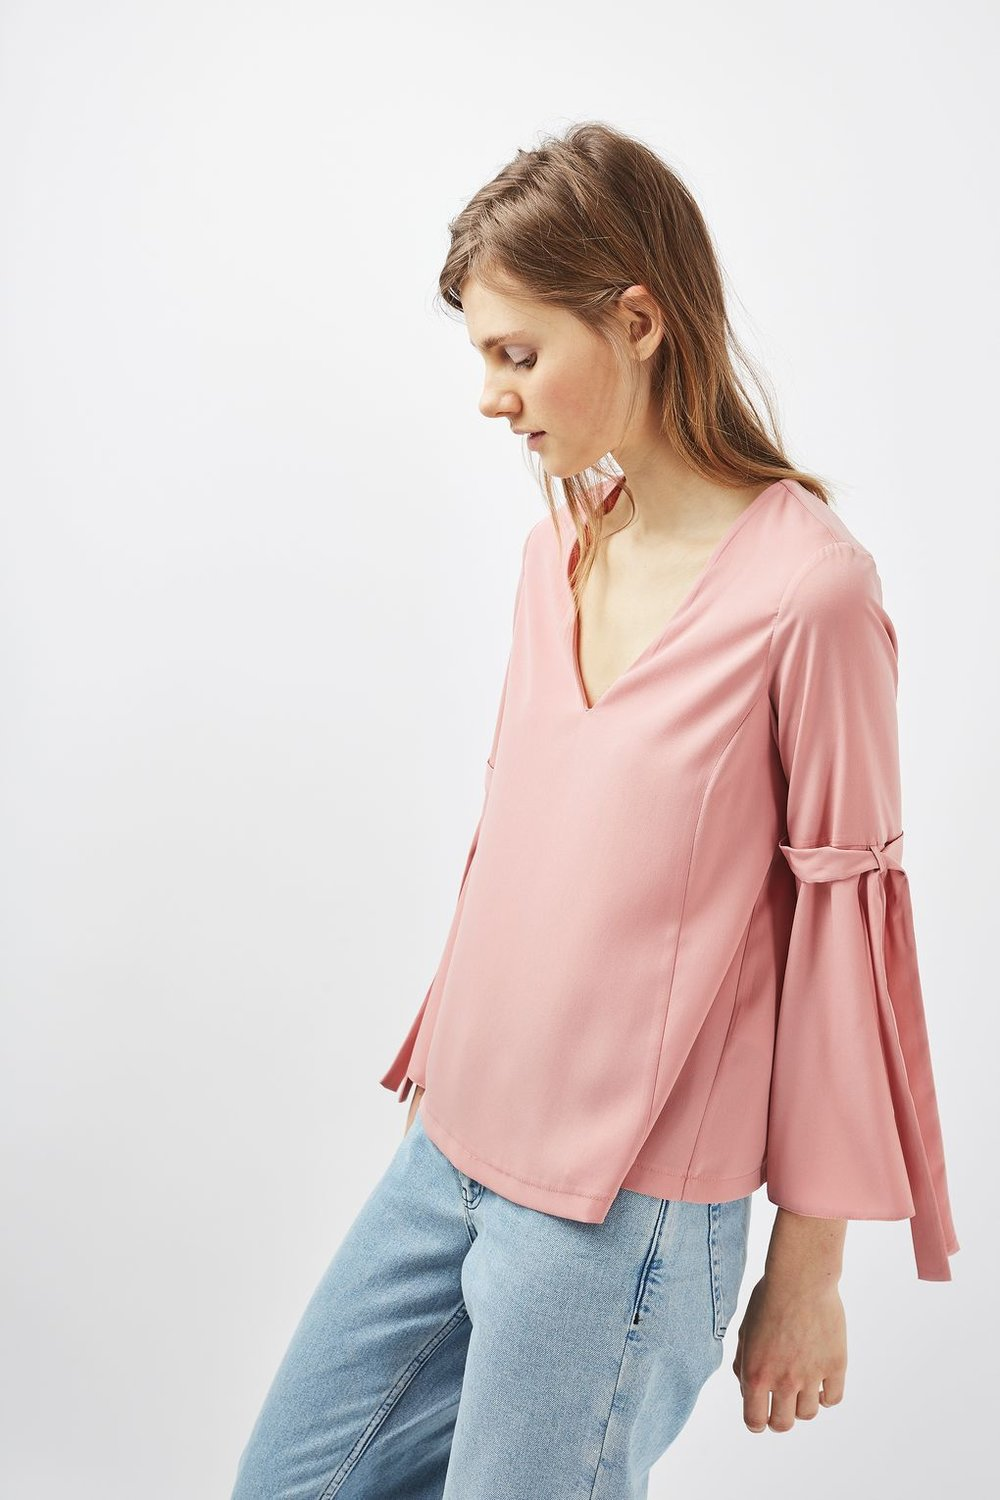 Check out this option from  TOPSHOP  'Tie Sleeve Blouse' $60,